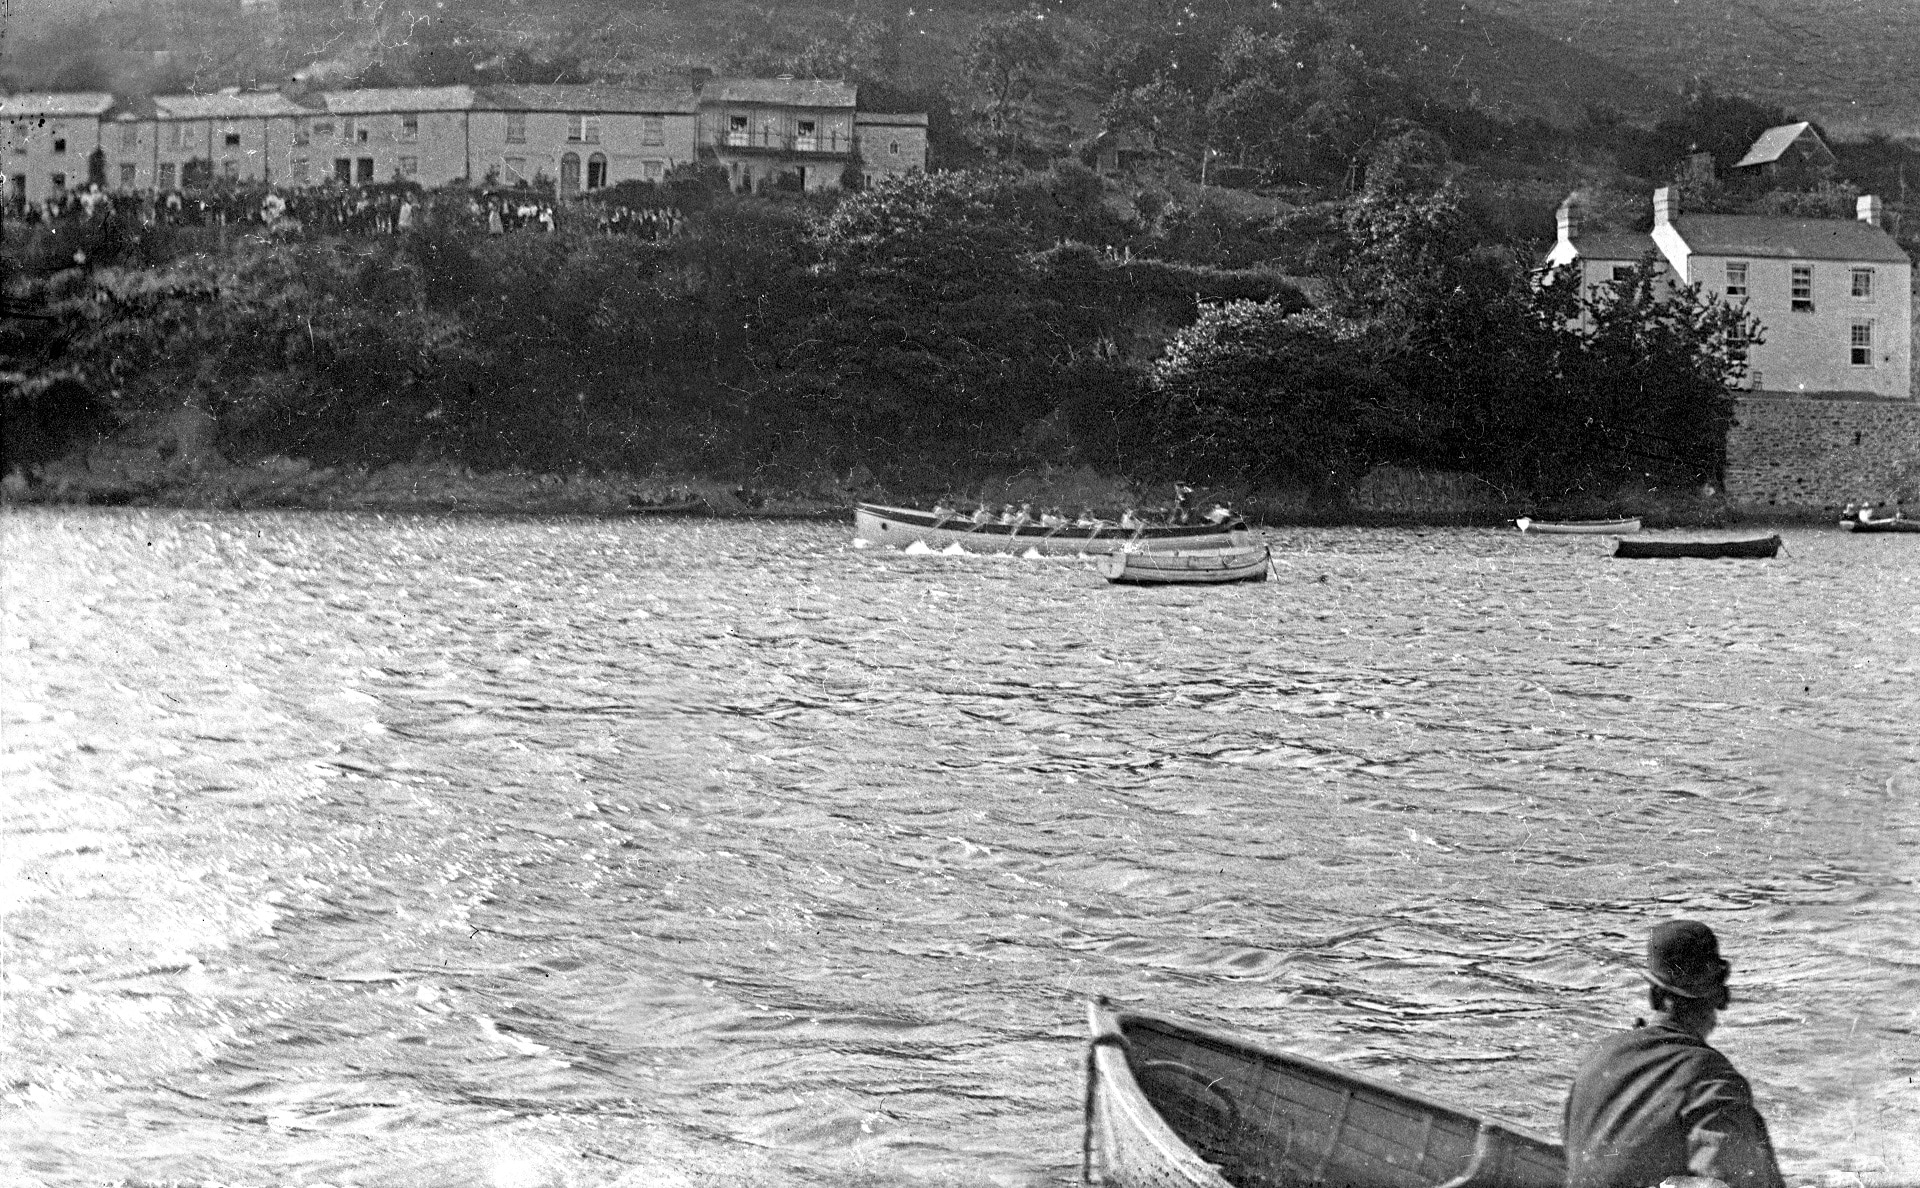 Regatta on the river in historic Malpas